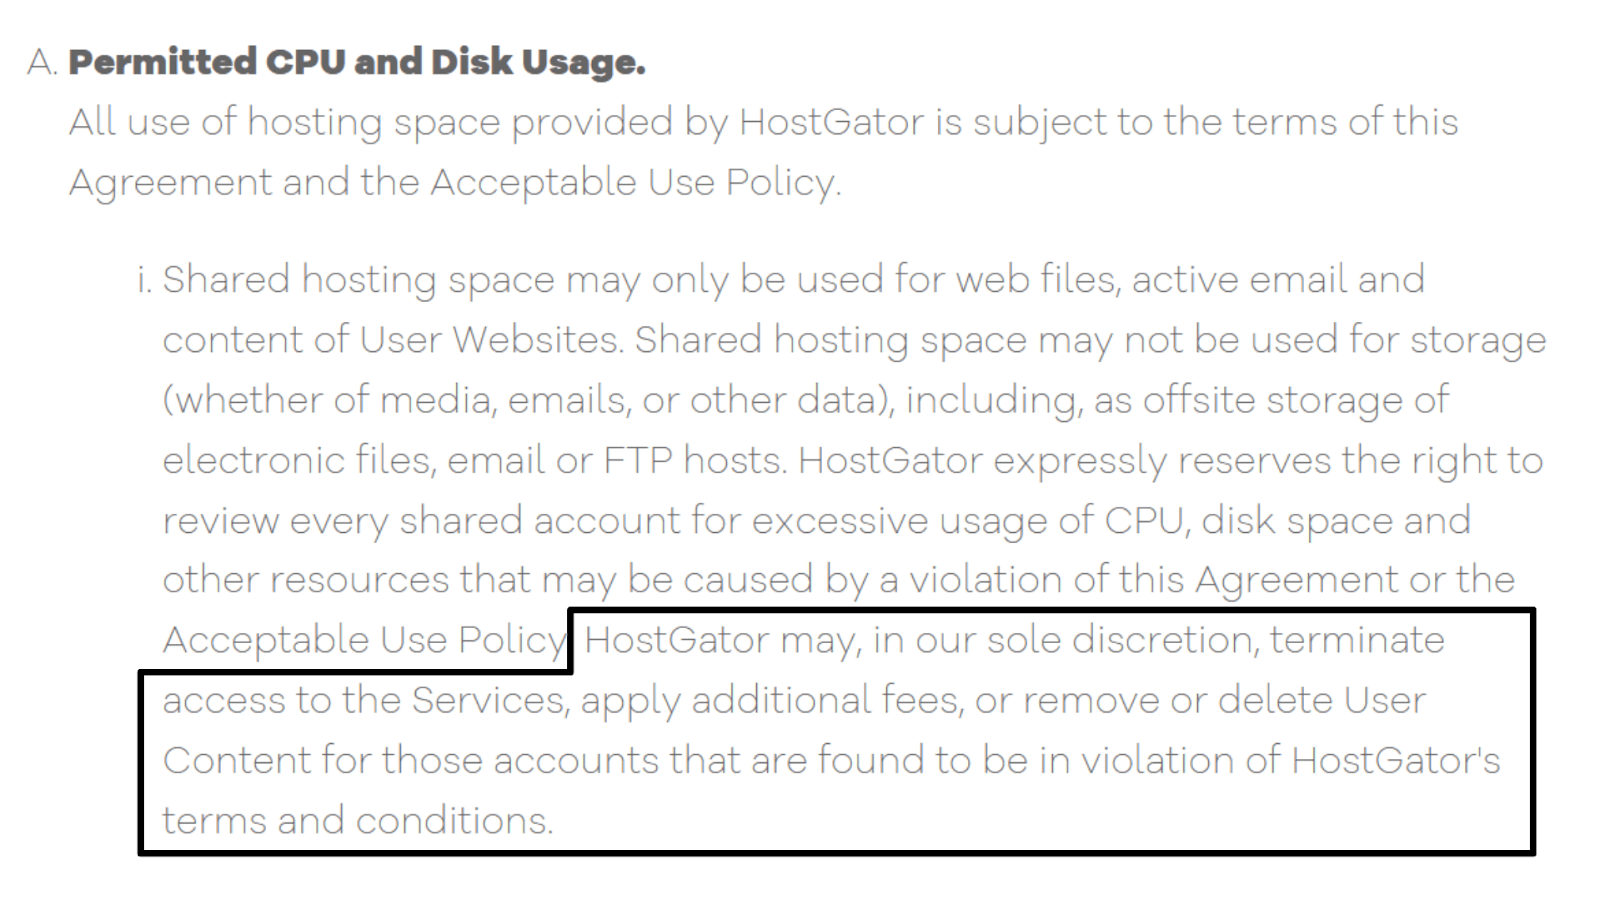 HostGator Terms of Service - permitted CPU and disk usage